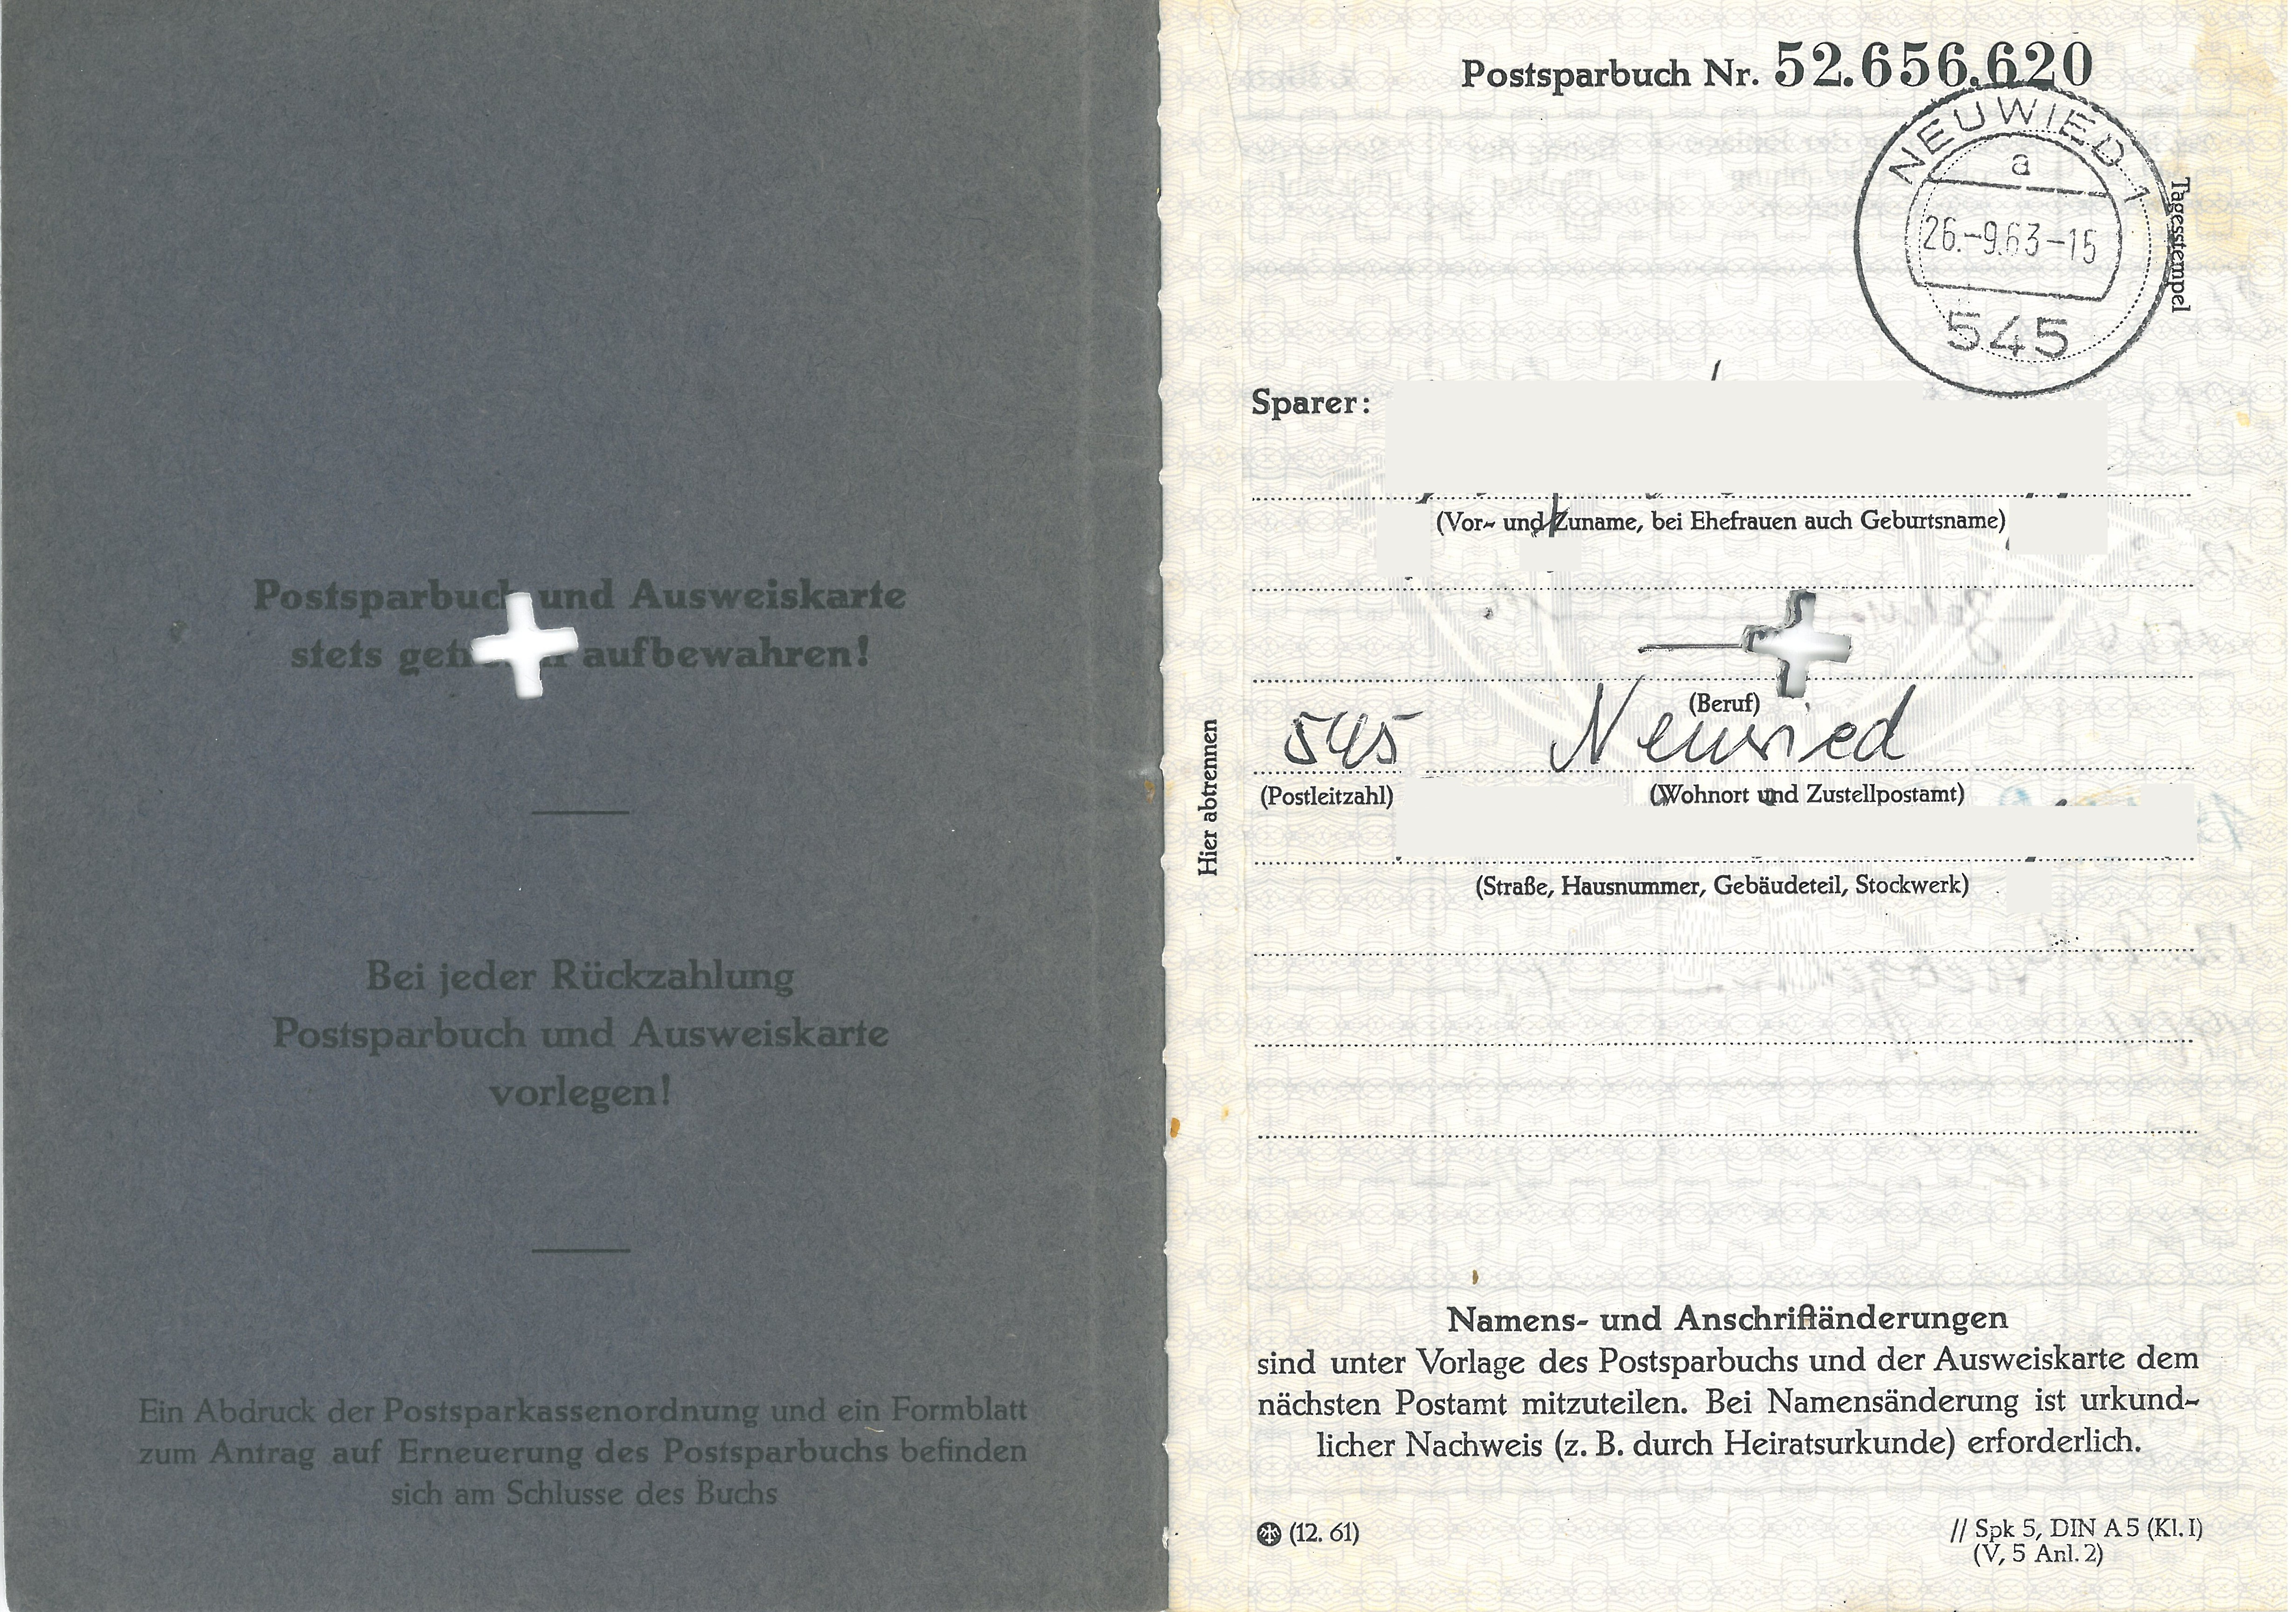 File:Postsparbuch 1963 Erste Seite.jpg - Wikimedia Commons